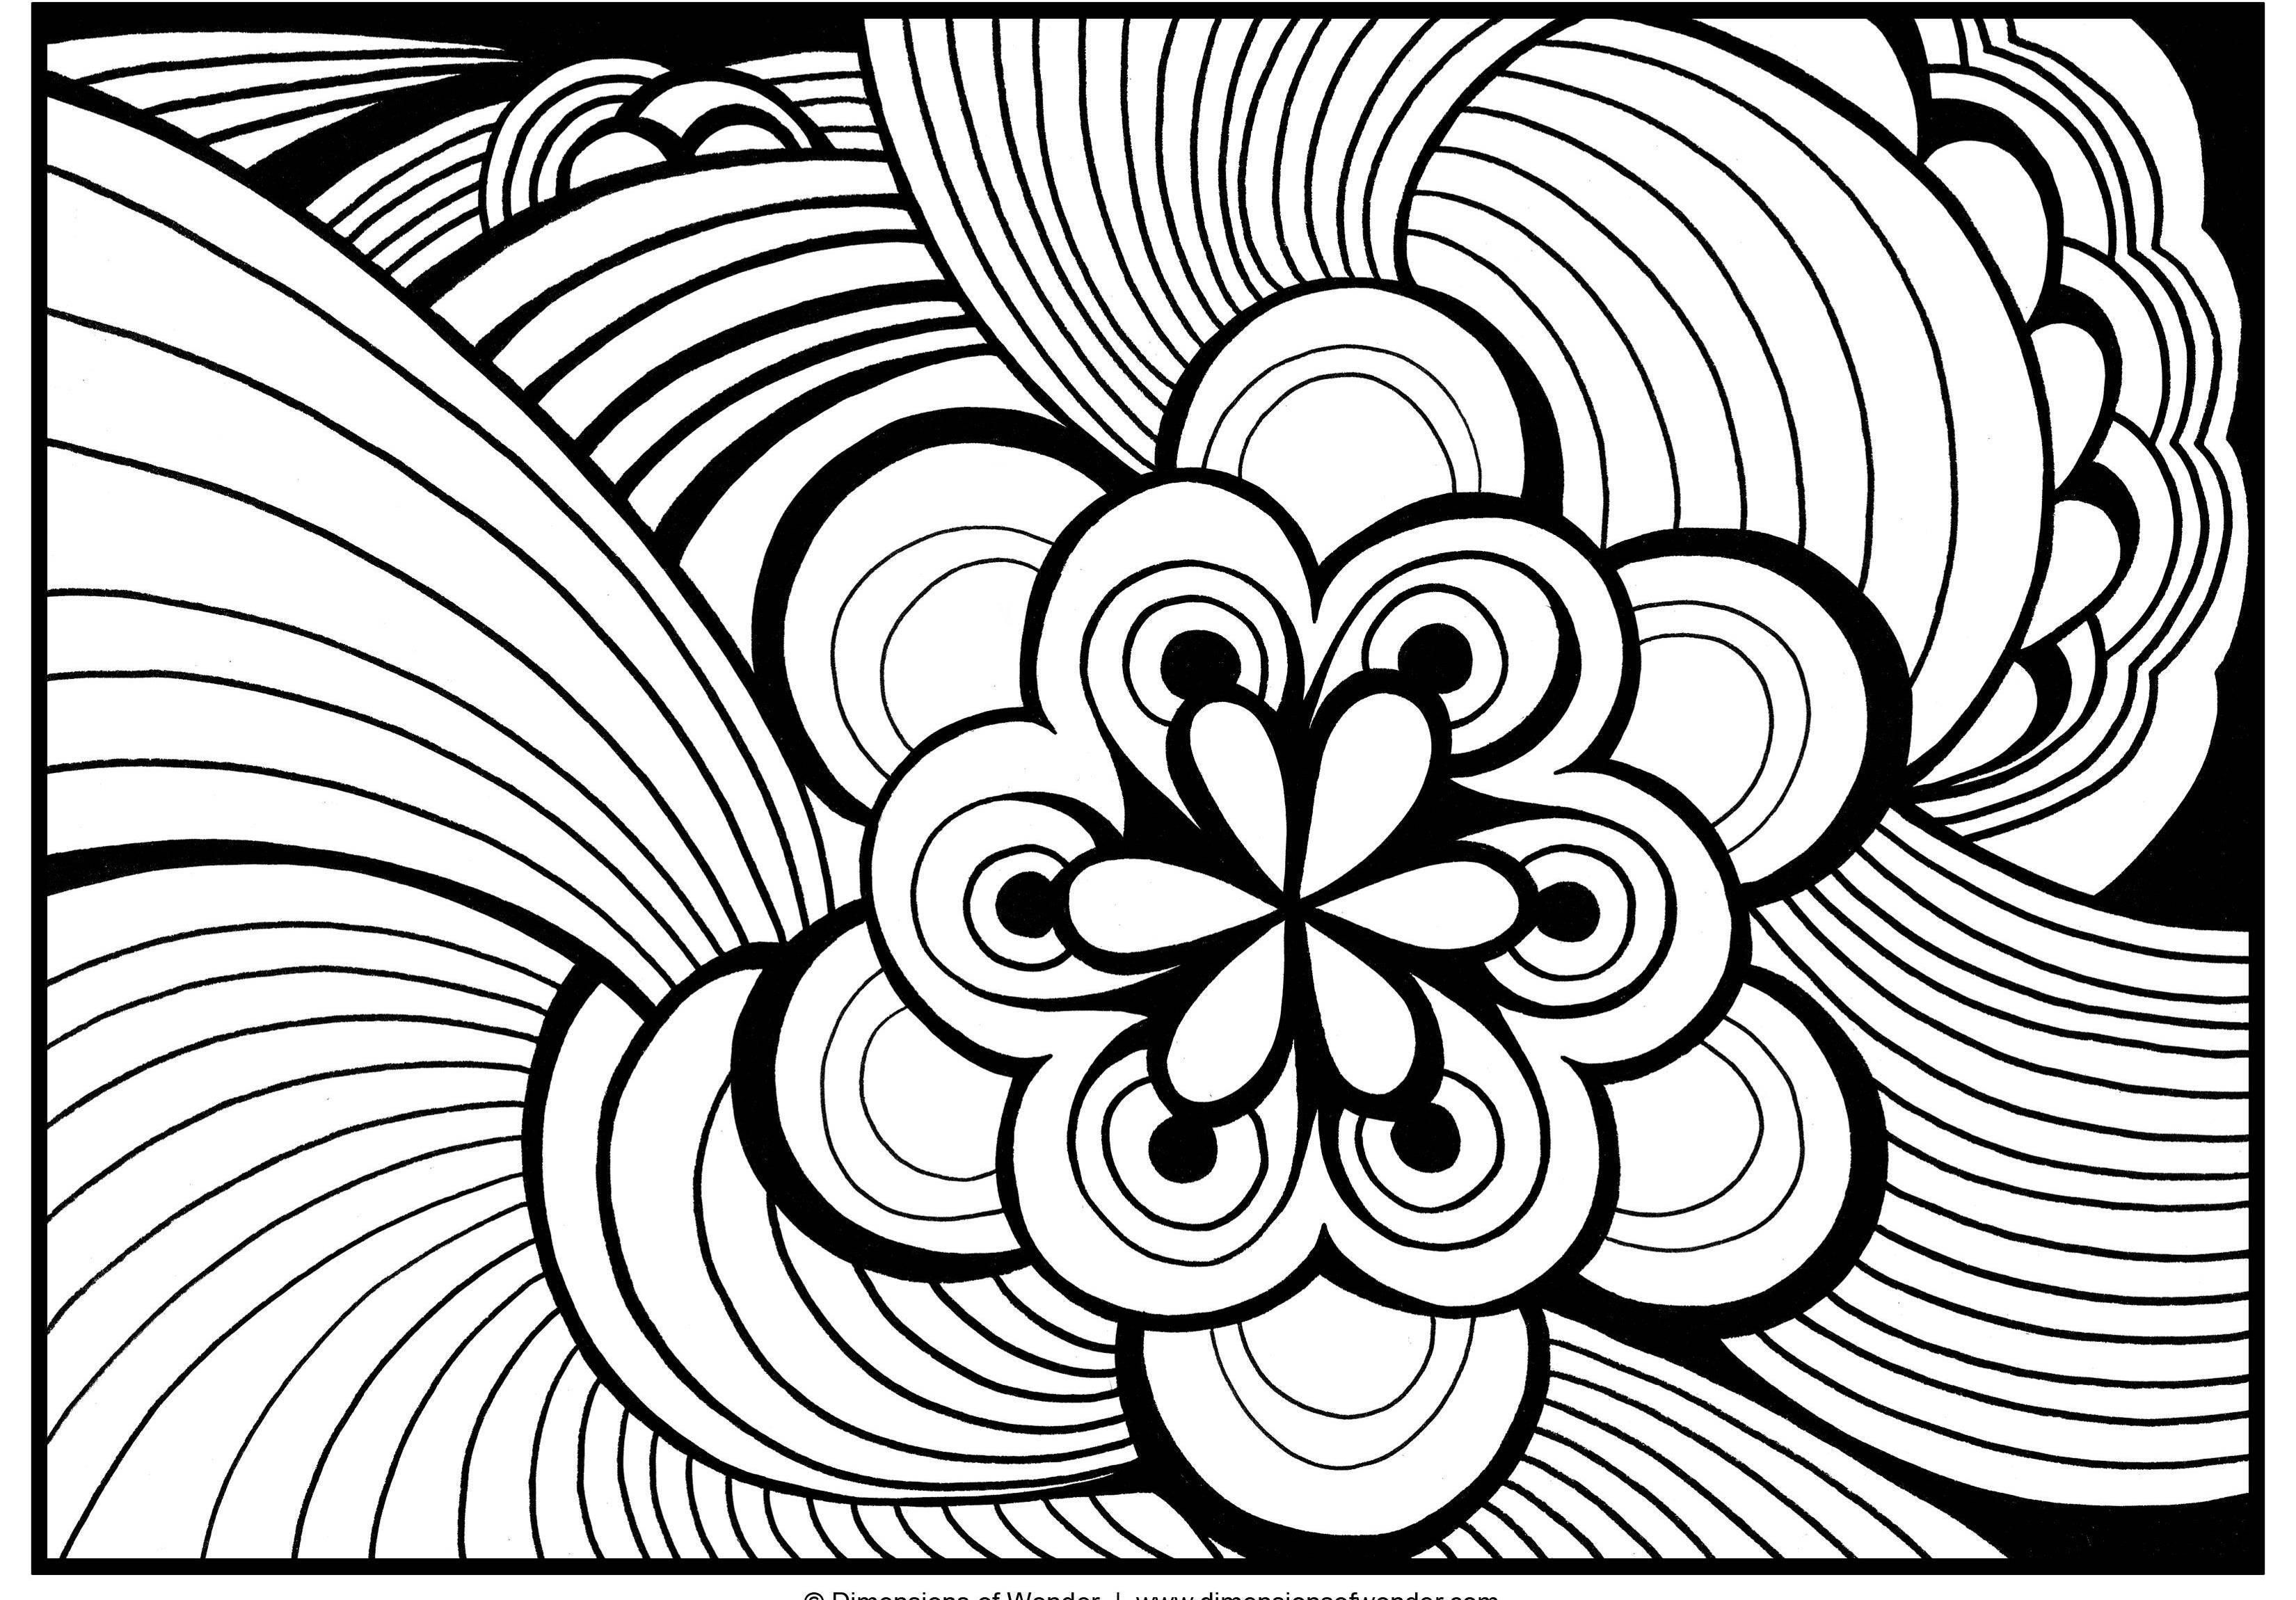 abstract coloring pages to print abstract cat printable coloring page coloring home coloring to print pages abstract